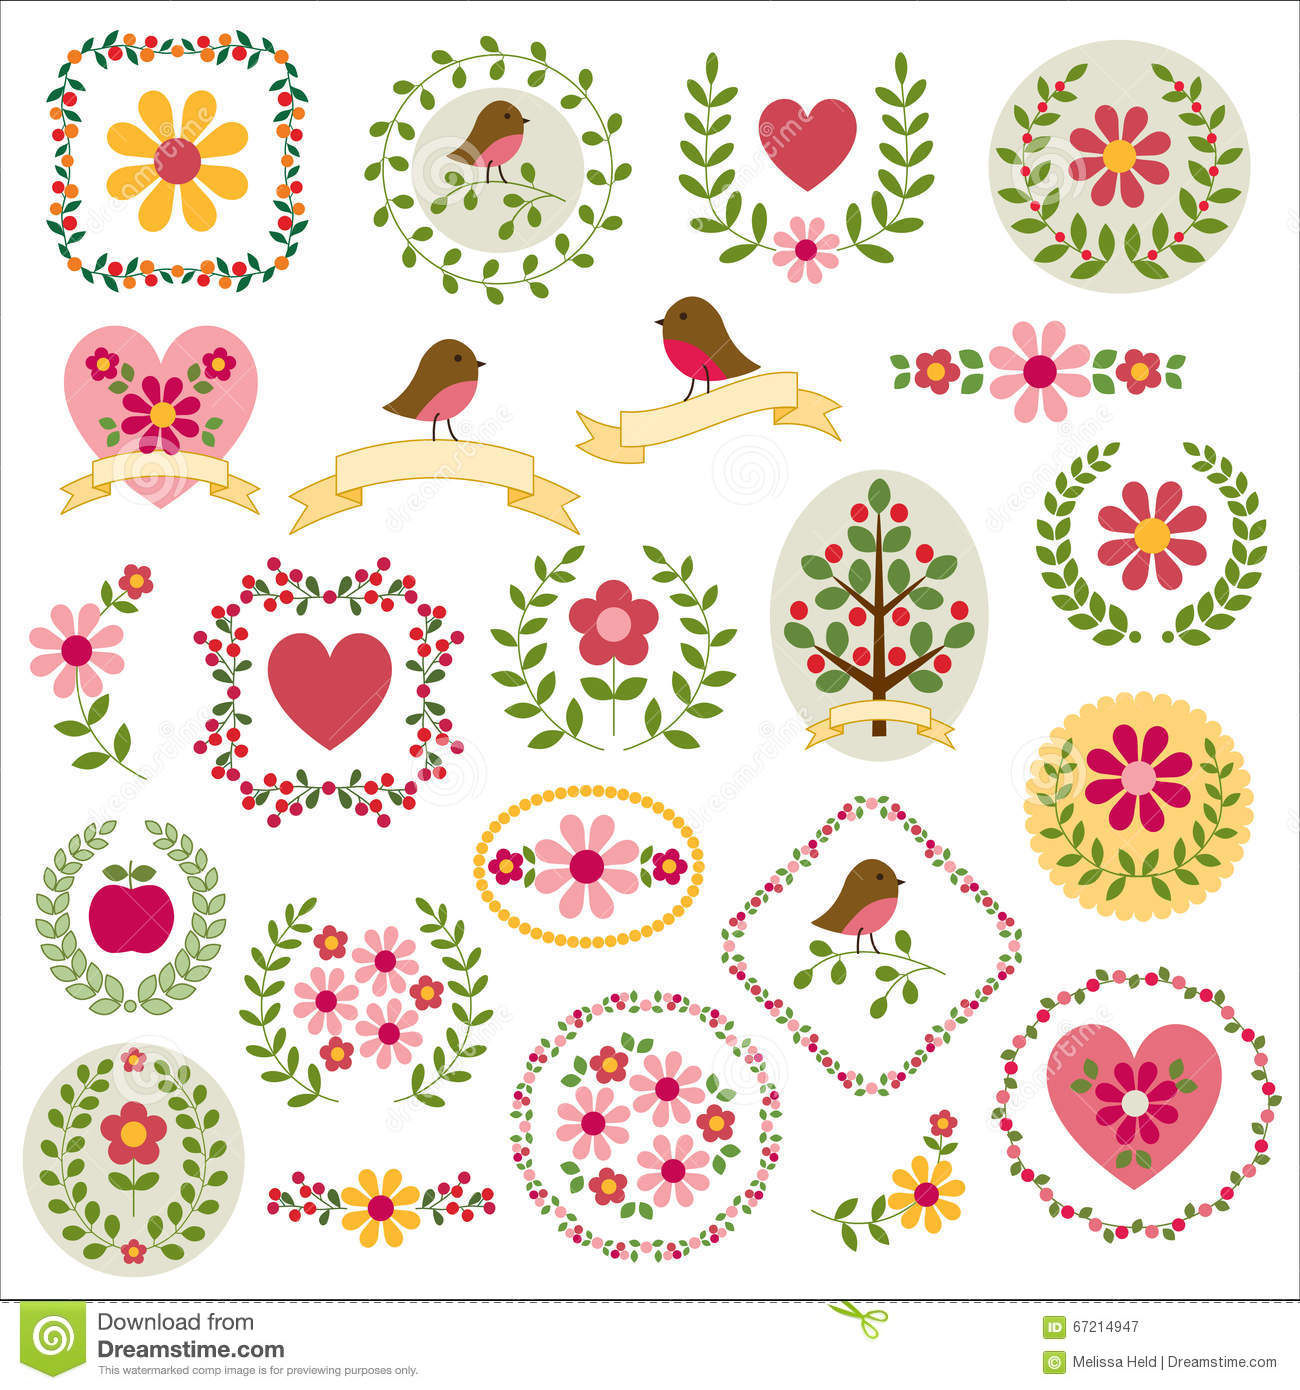 Woodland crests clipart